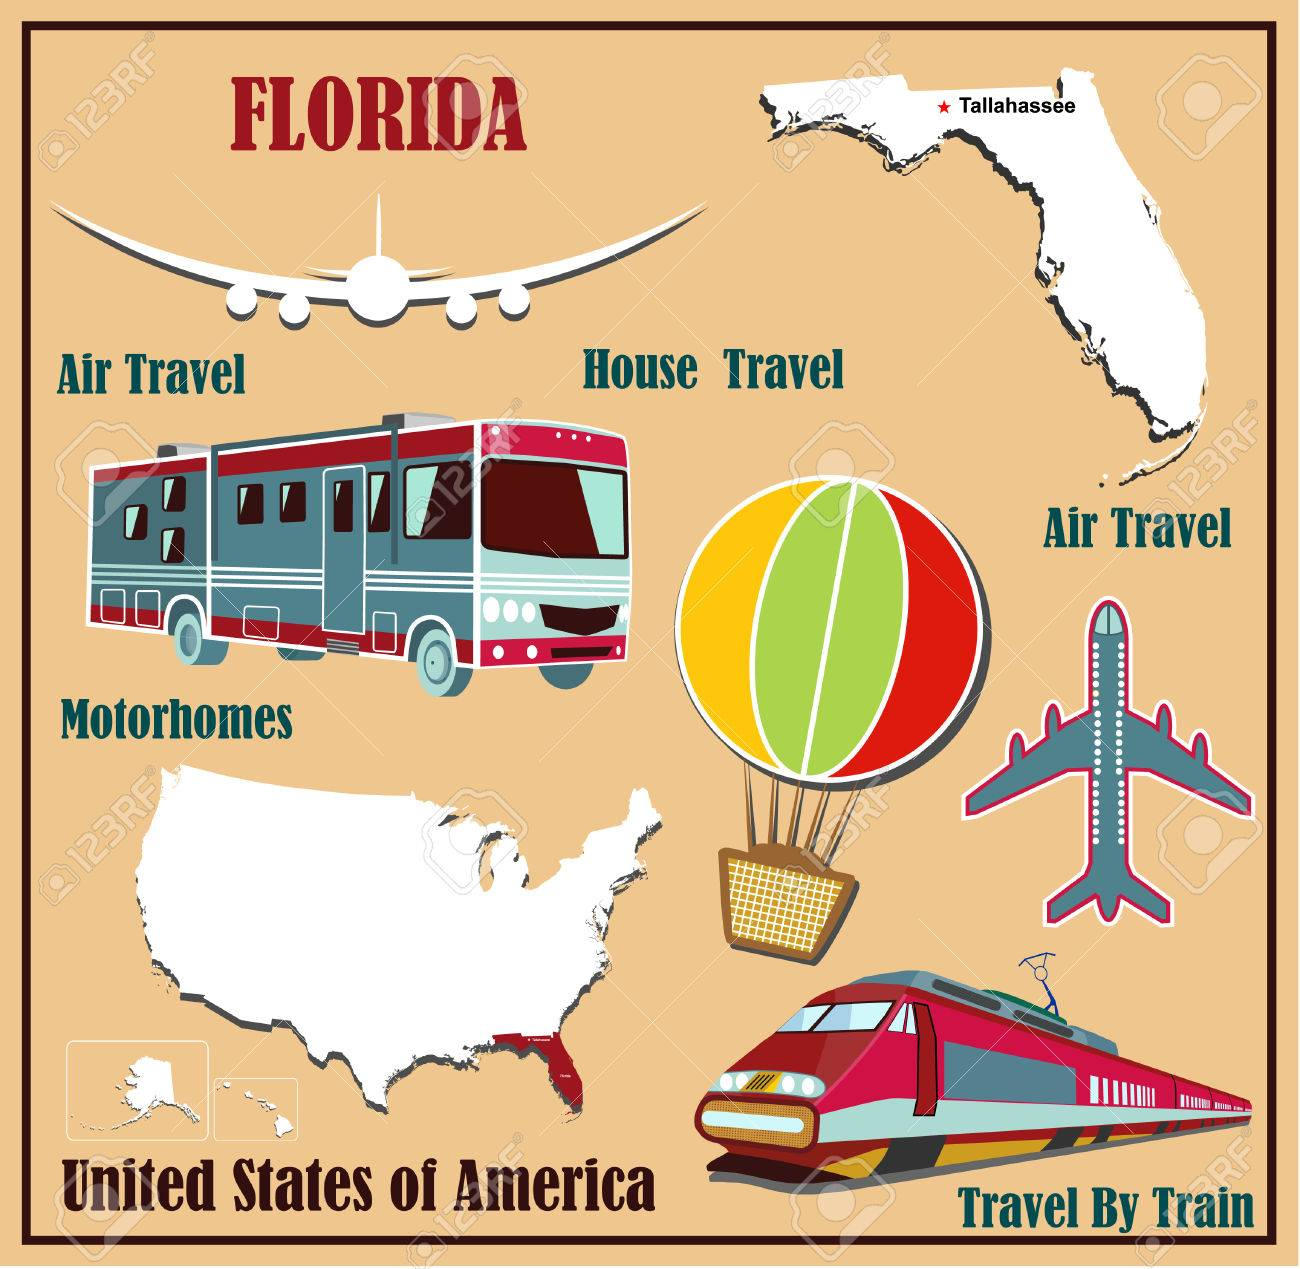 Flat Map Of Florida In The US For Air Travel By Car And Train - Flat us map